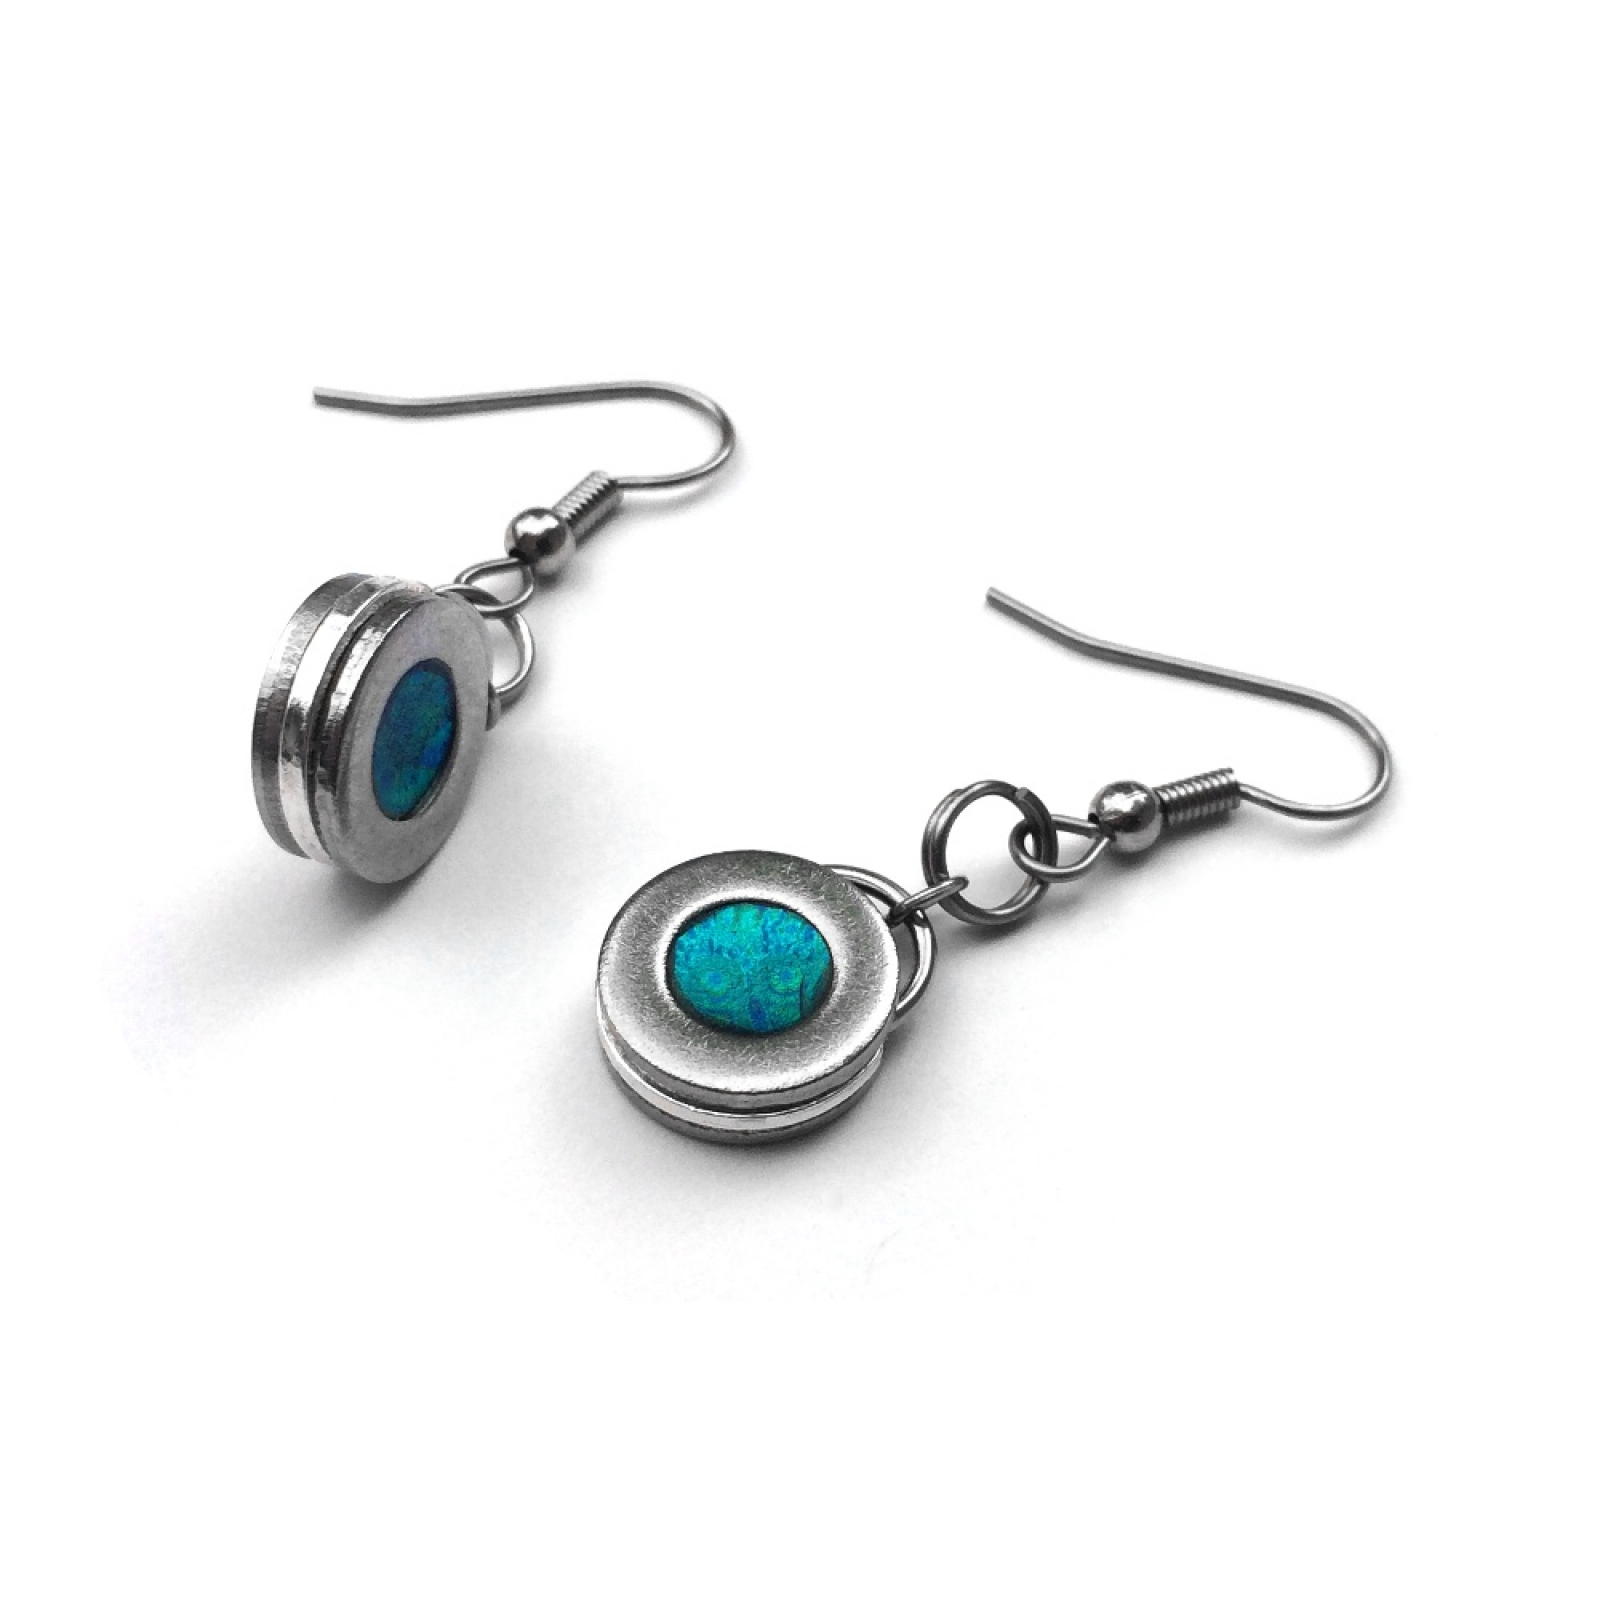 Fashion Handmade Designer Earrings Stainless Steel Silver And Teal